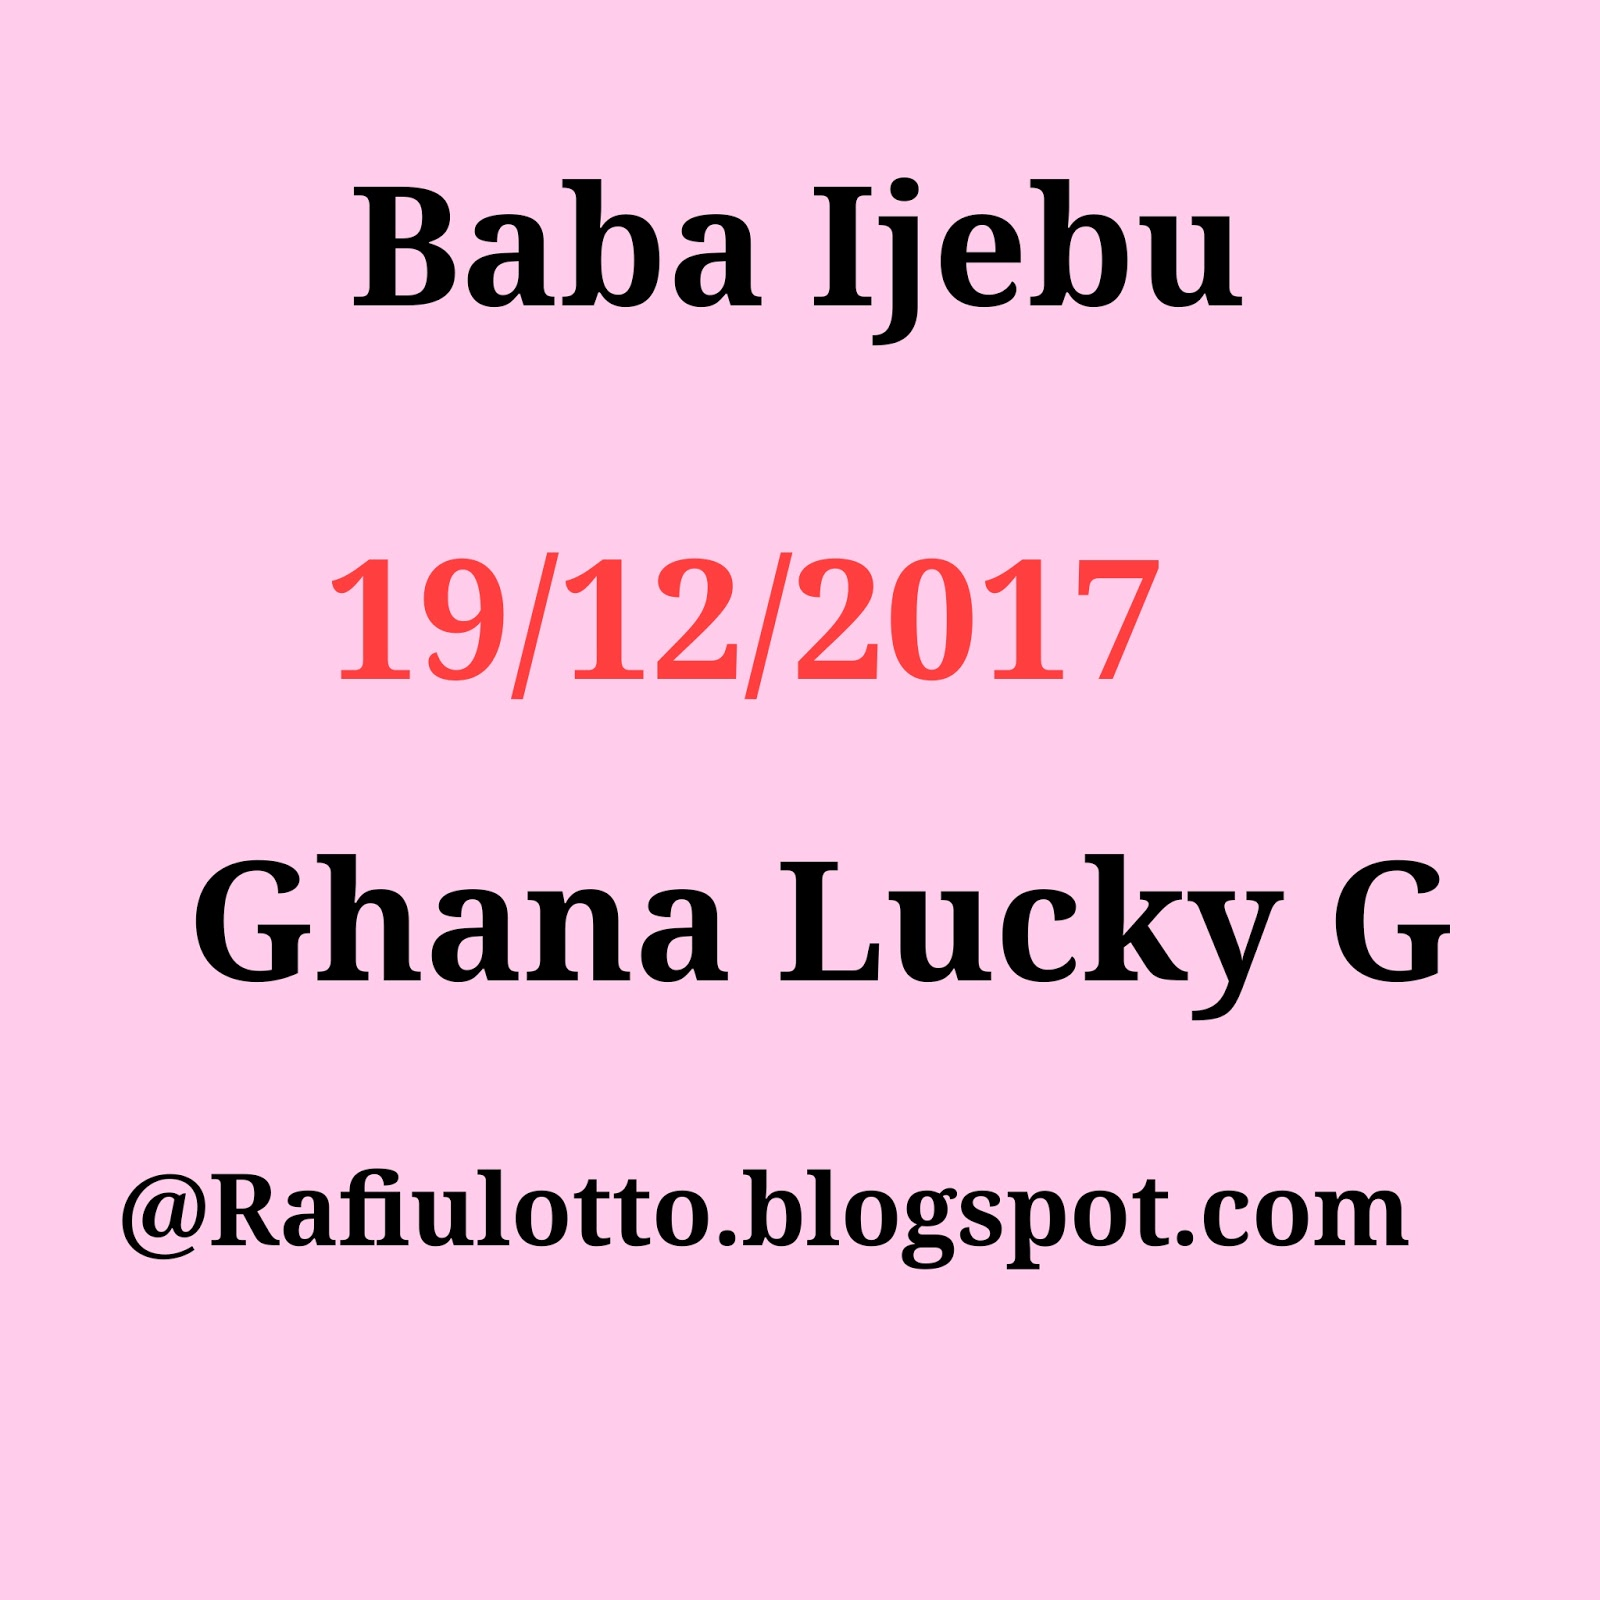 Baba Ijebu Lottery Ghana Lucky G game 19/12/2017 Two Sure, Three